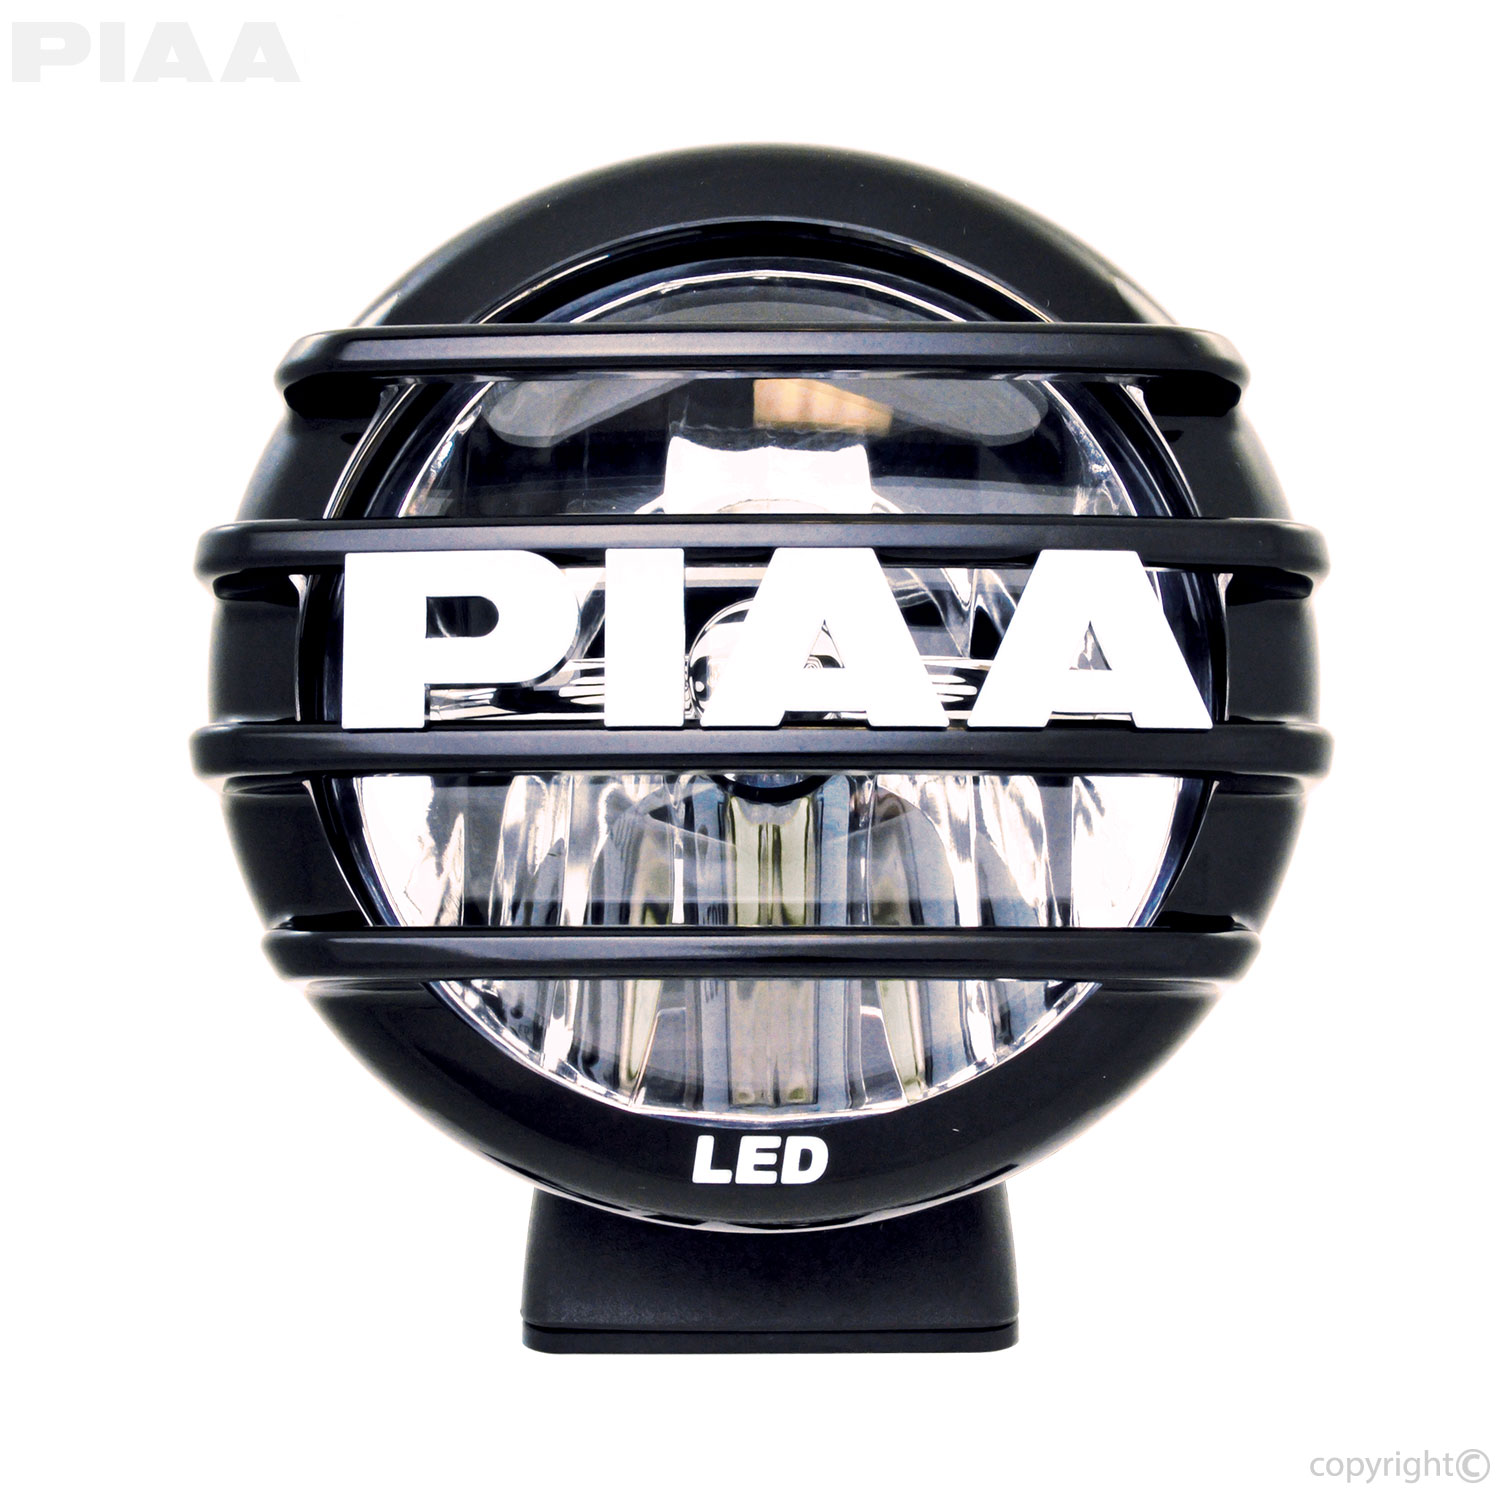 "LP560 6"" LED Driving Light Kit, SAE Compliant - 05672"